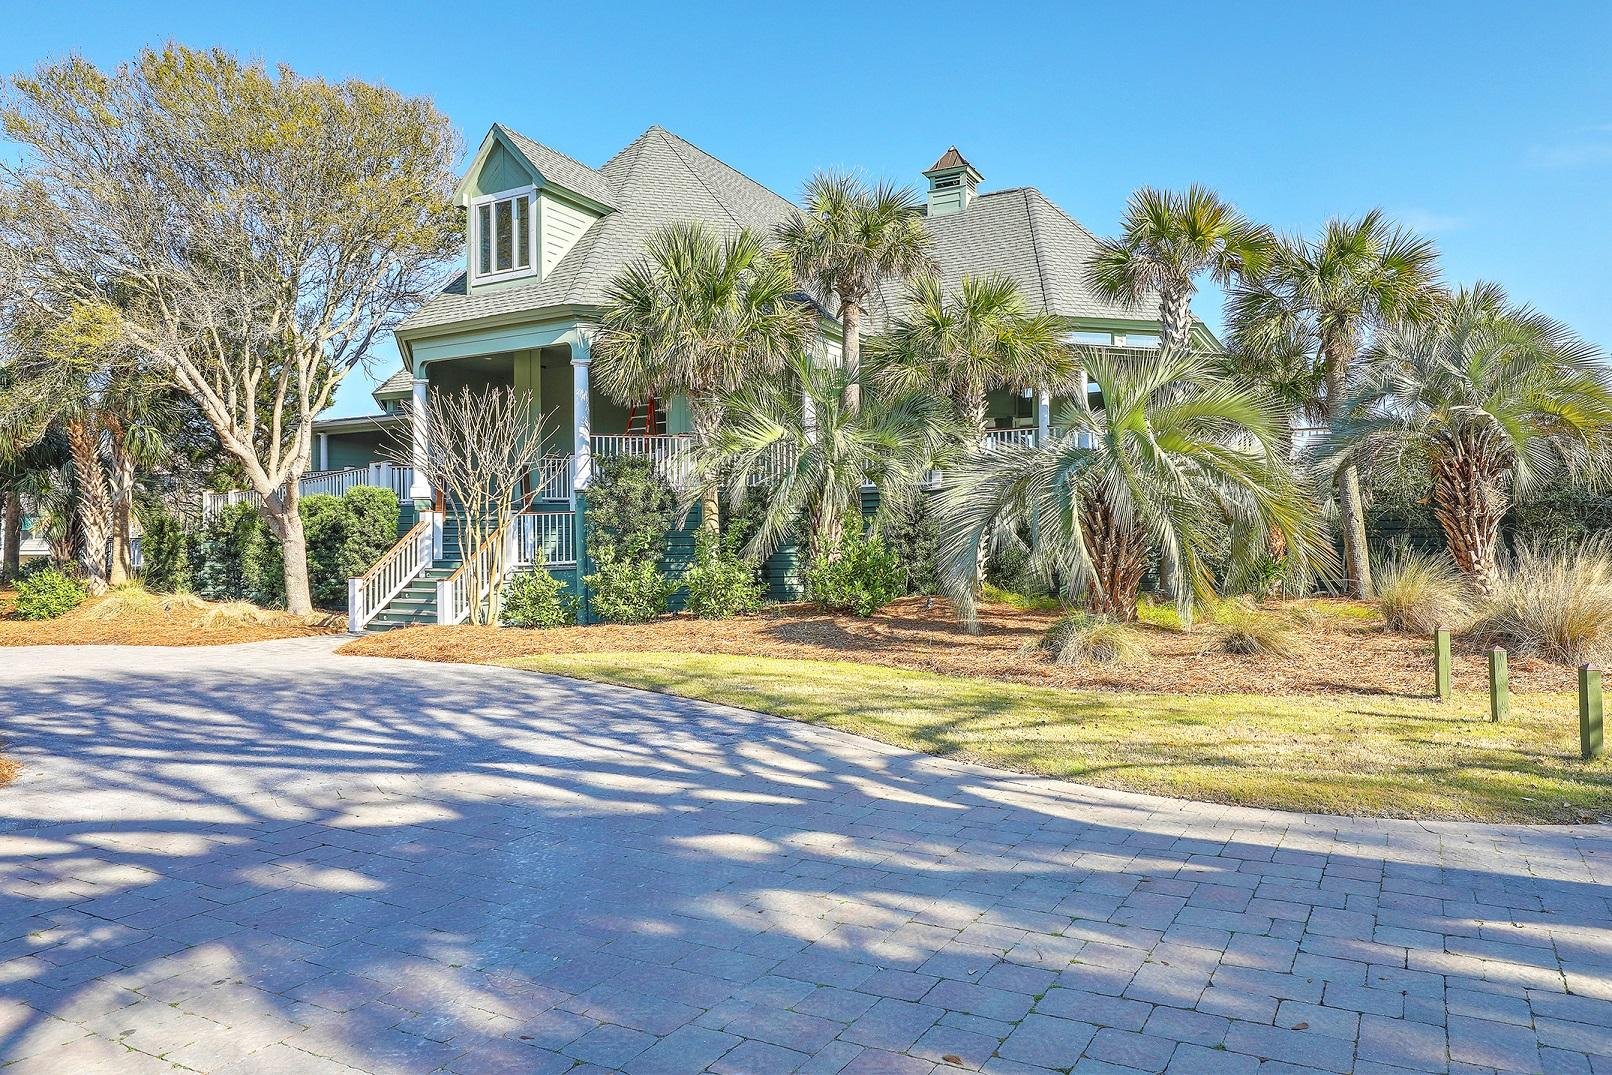 Wild Dunes Homes For Sale - 55 Seagrass, Isle of Palms, SC - 14